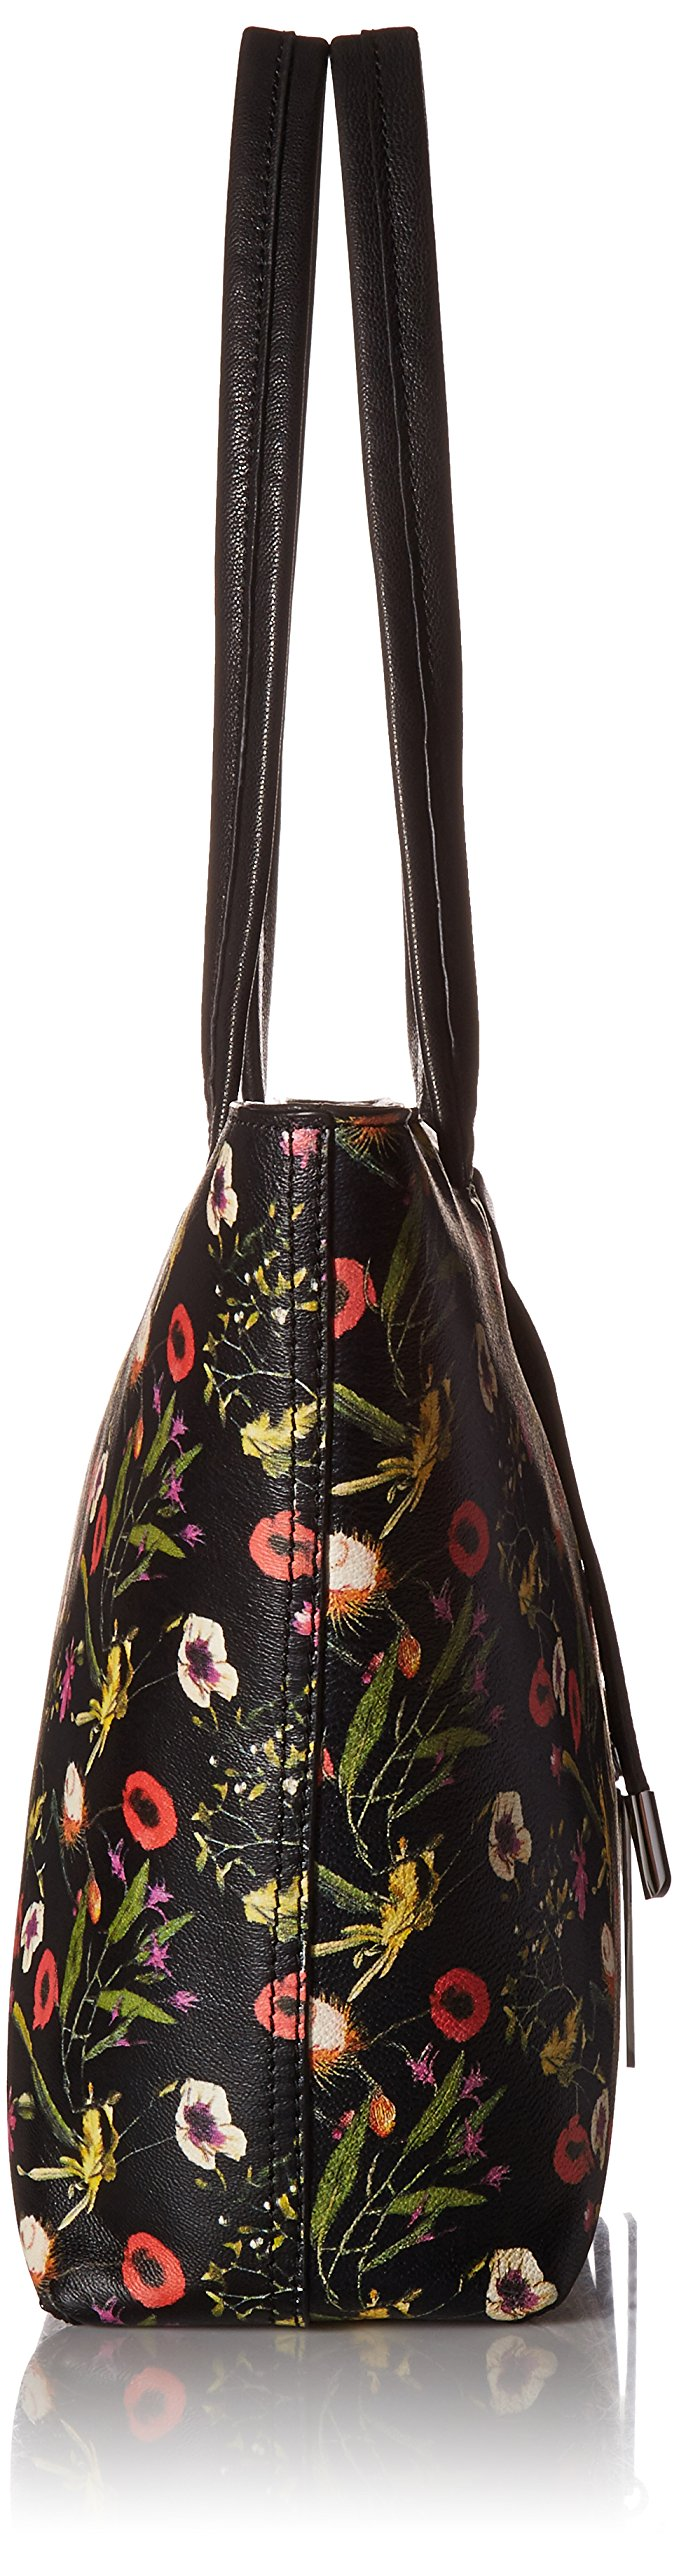 Vince Camuto Leila Small Tote, Black/Multi by Vince Camuto (Image #3)